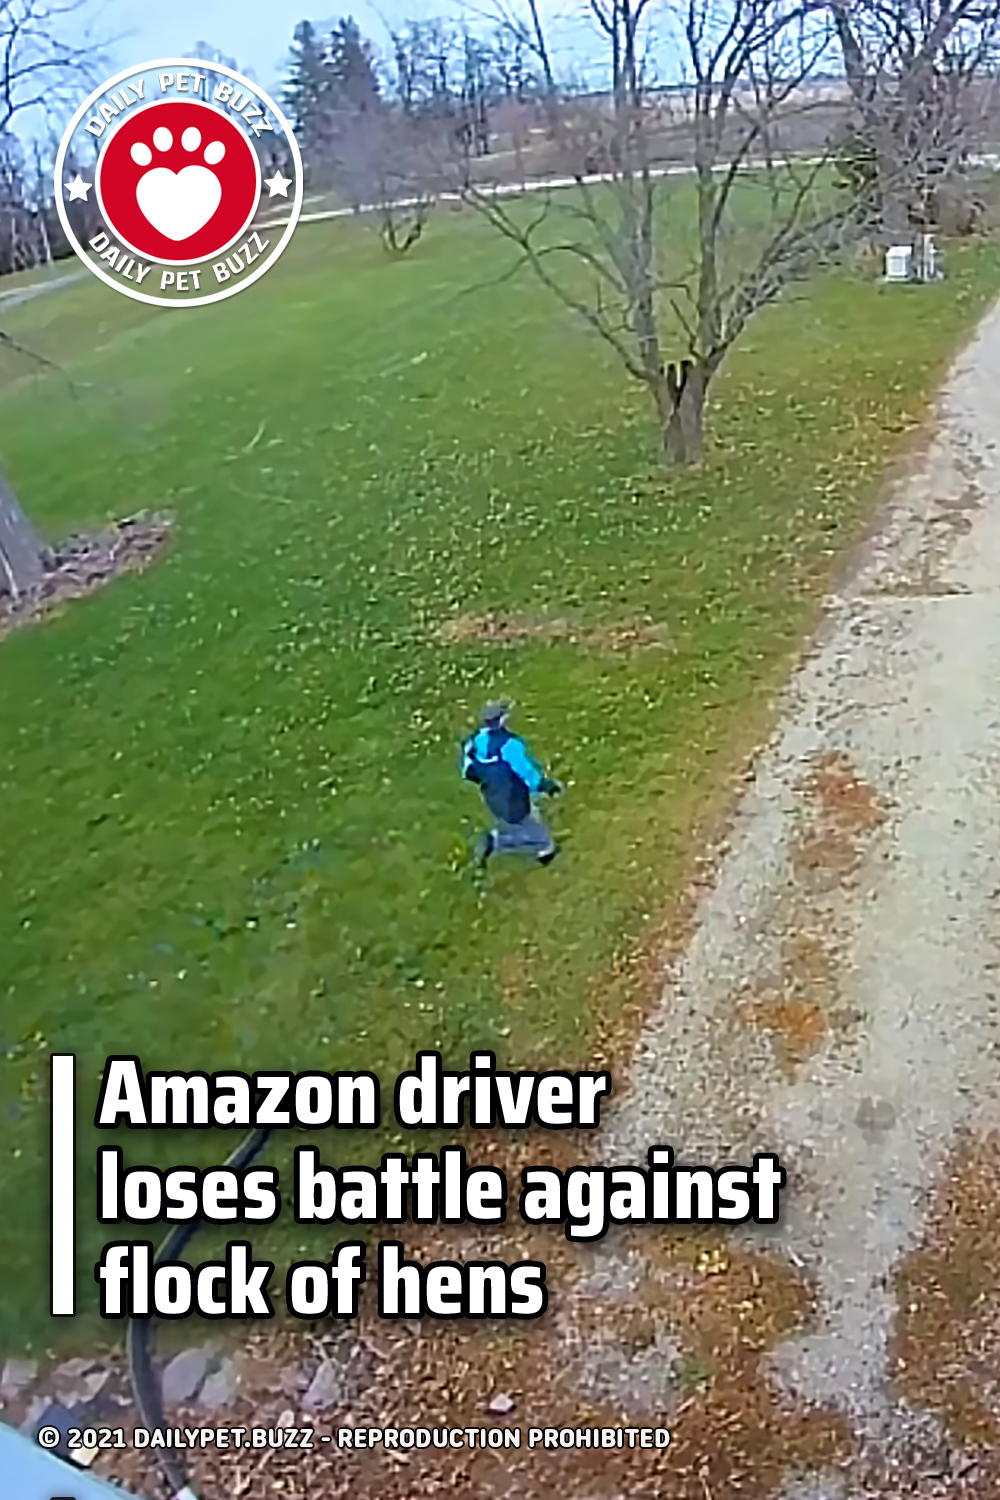 Amazon driver loses battle against flock of hens